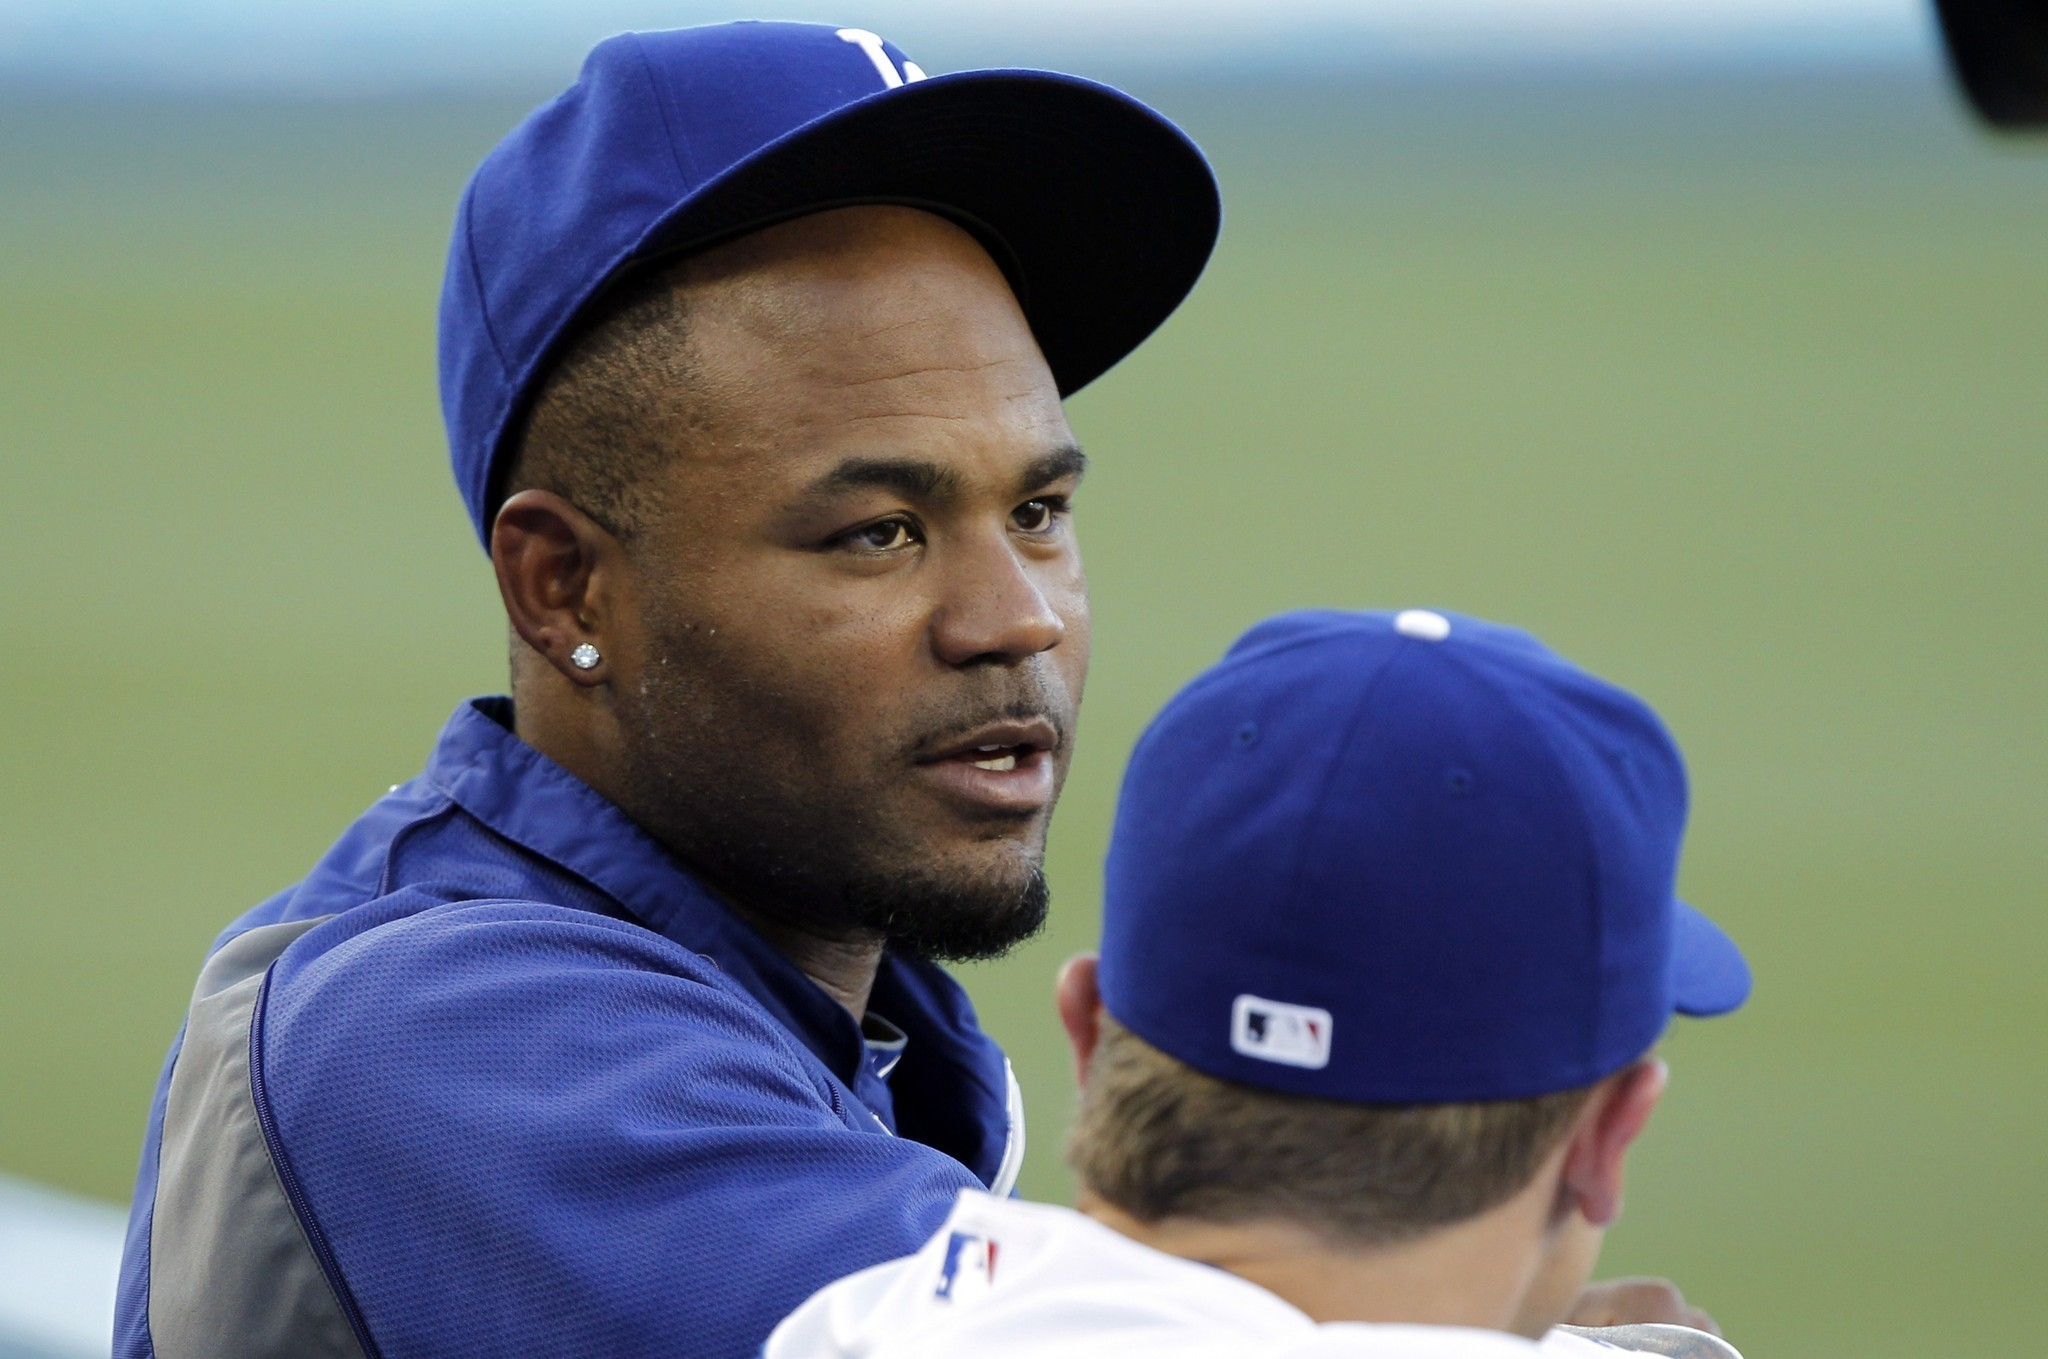 Dodgers don't plan to start Carl Crawford in the outfield